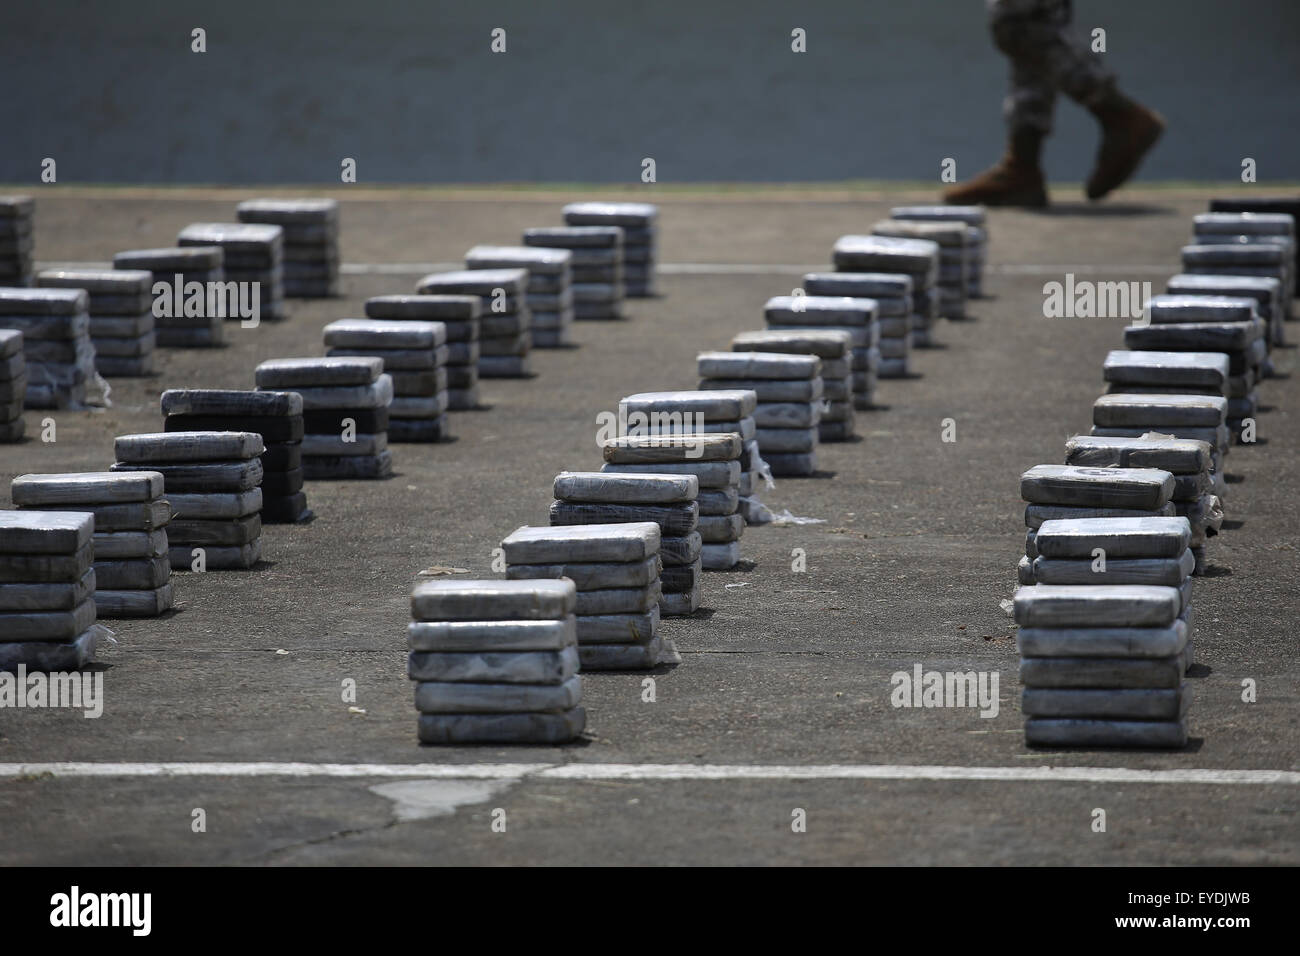 Panama City, Panama. 27th July, 2015. Drug packages are shown during a press conference, in the City of Panama, - Stock Image